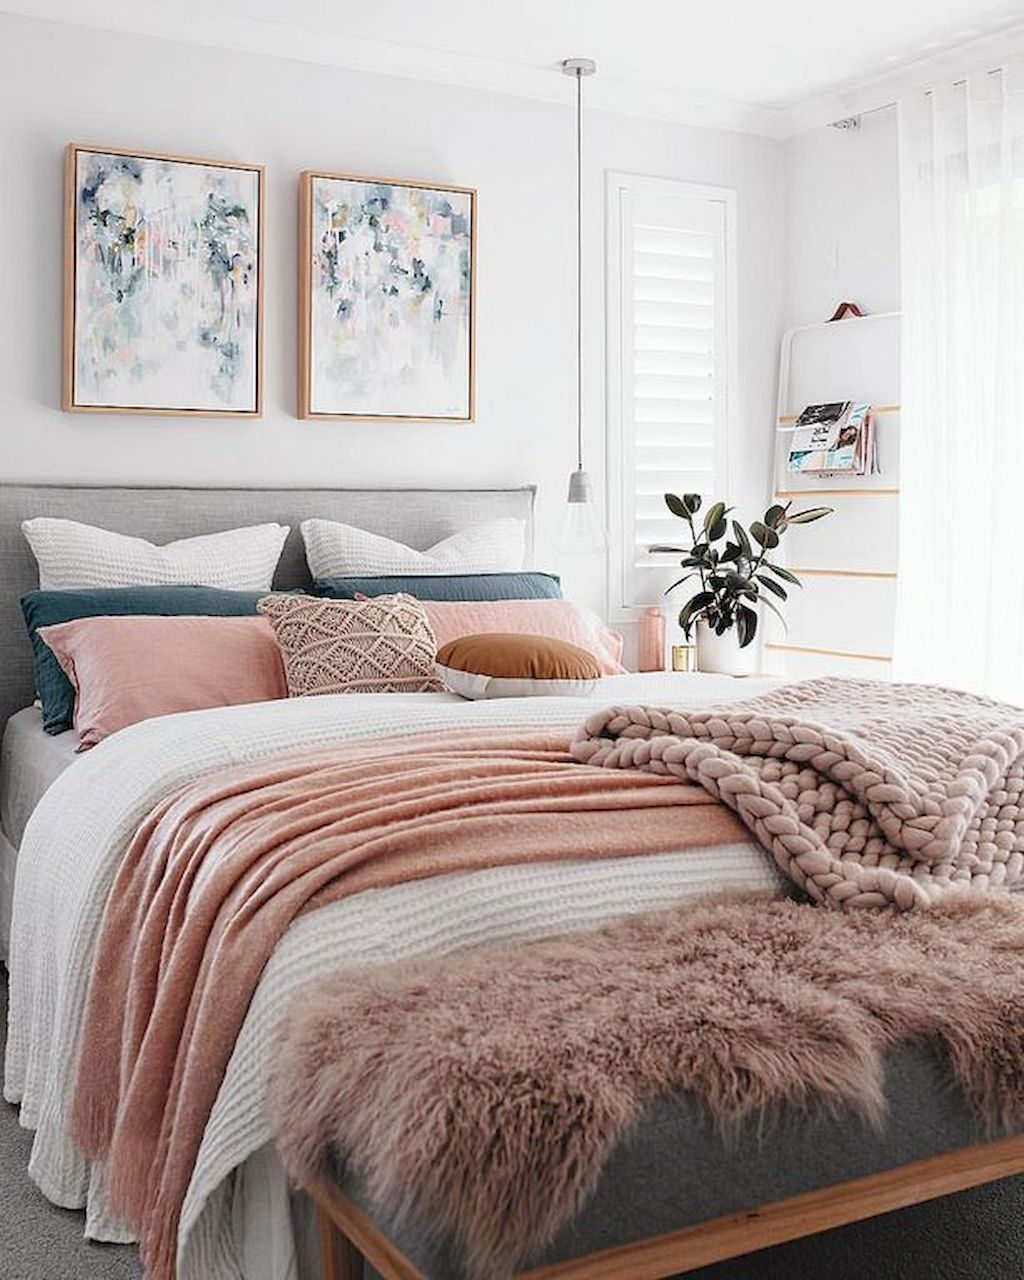 Rest Tight Tonight In A Cozy Area Courtesy Of Our Collection Of Contemporary Bed Room Co Luxury Bedroom Master Beautiful Bedroom Decor Small Apartment Bedrooms